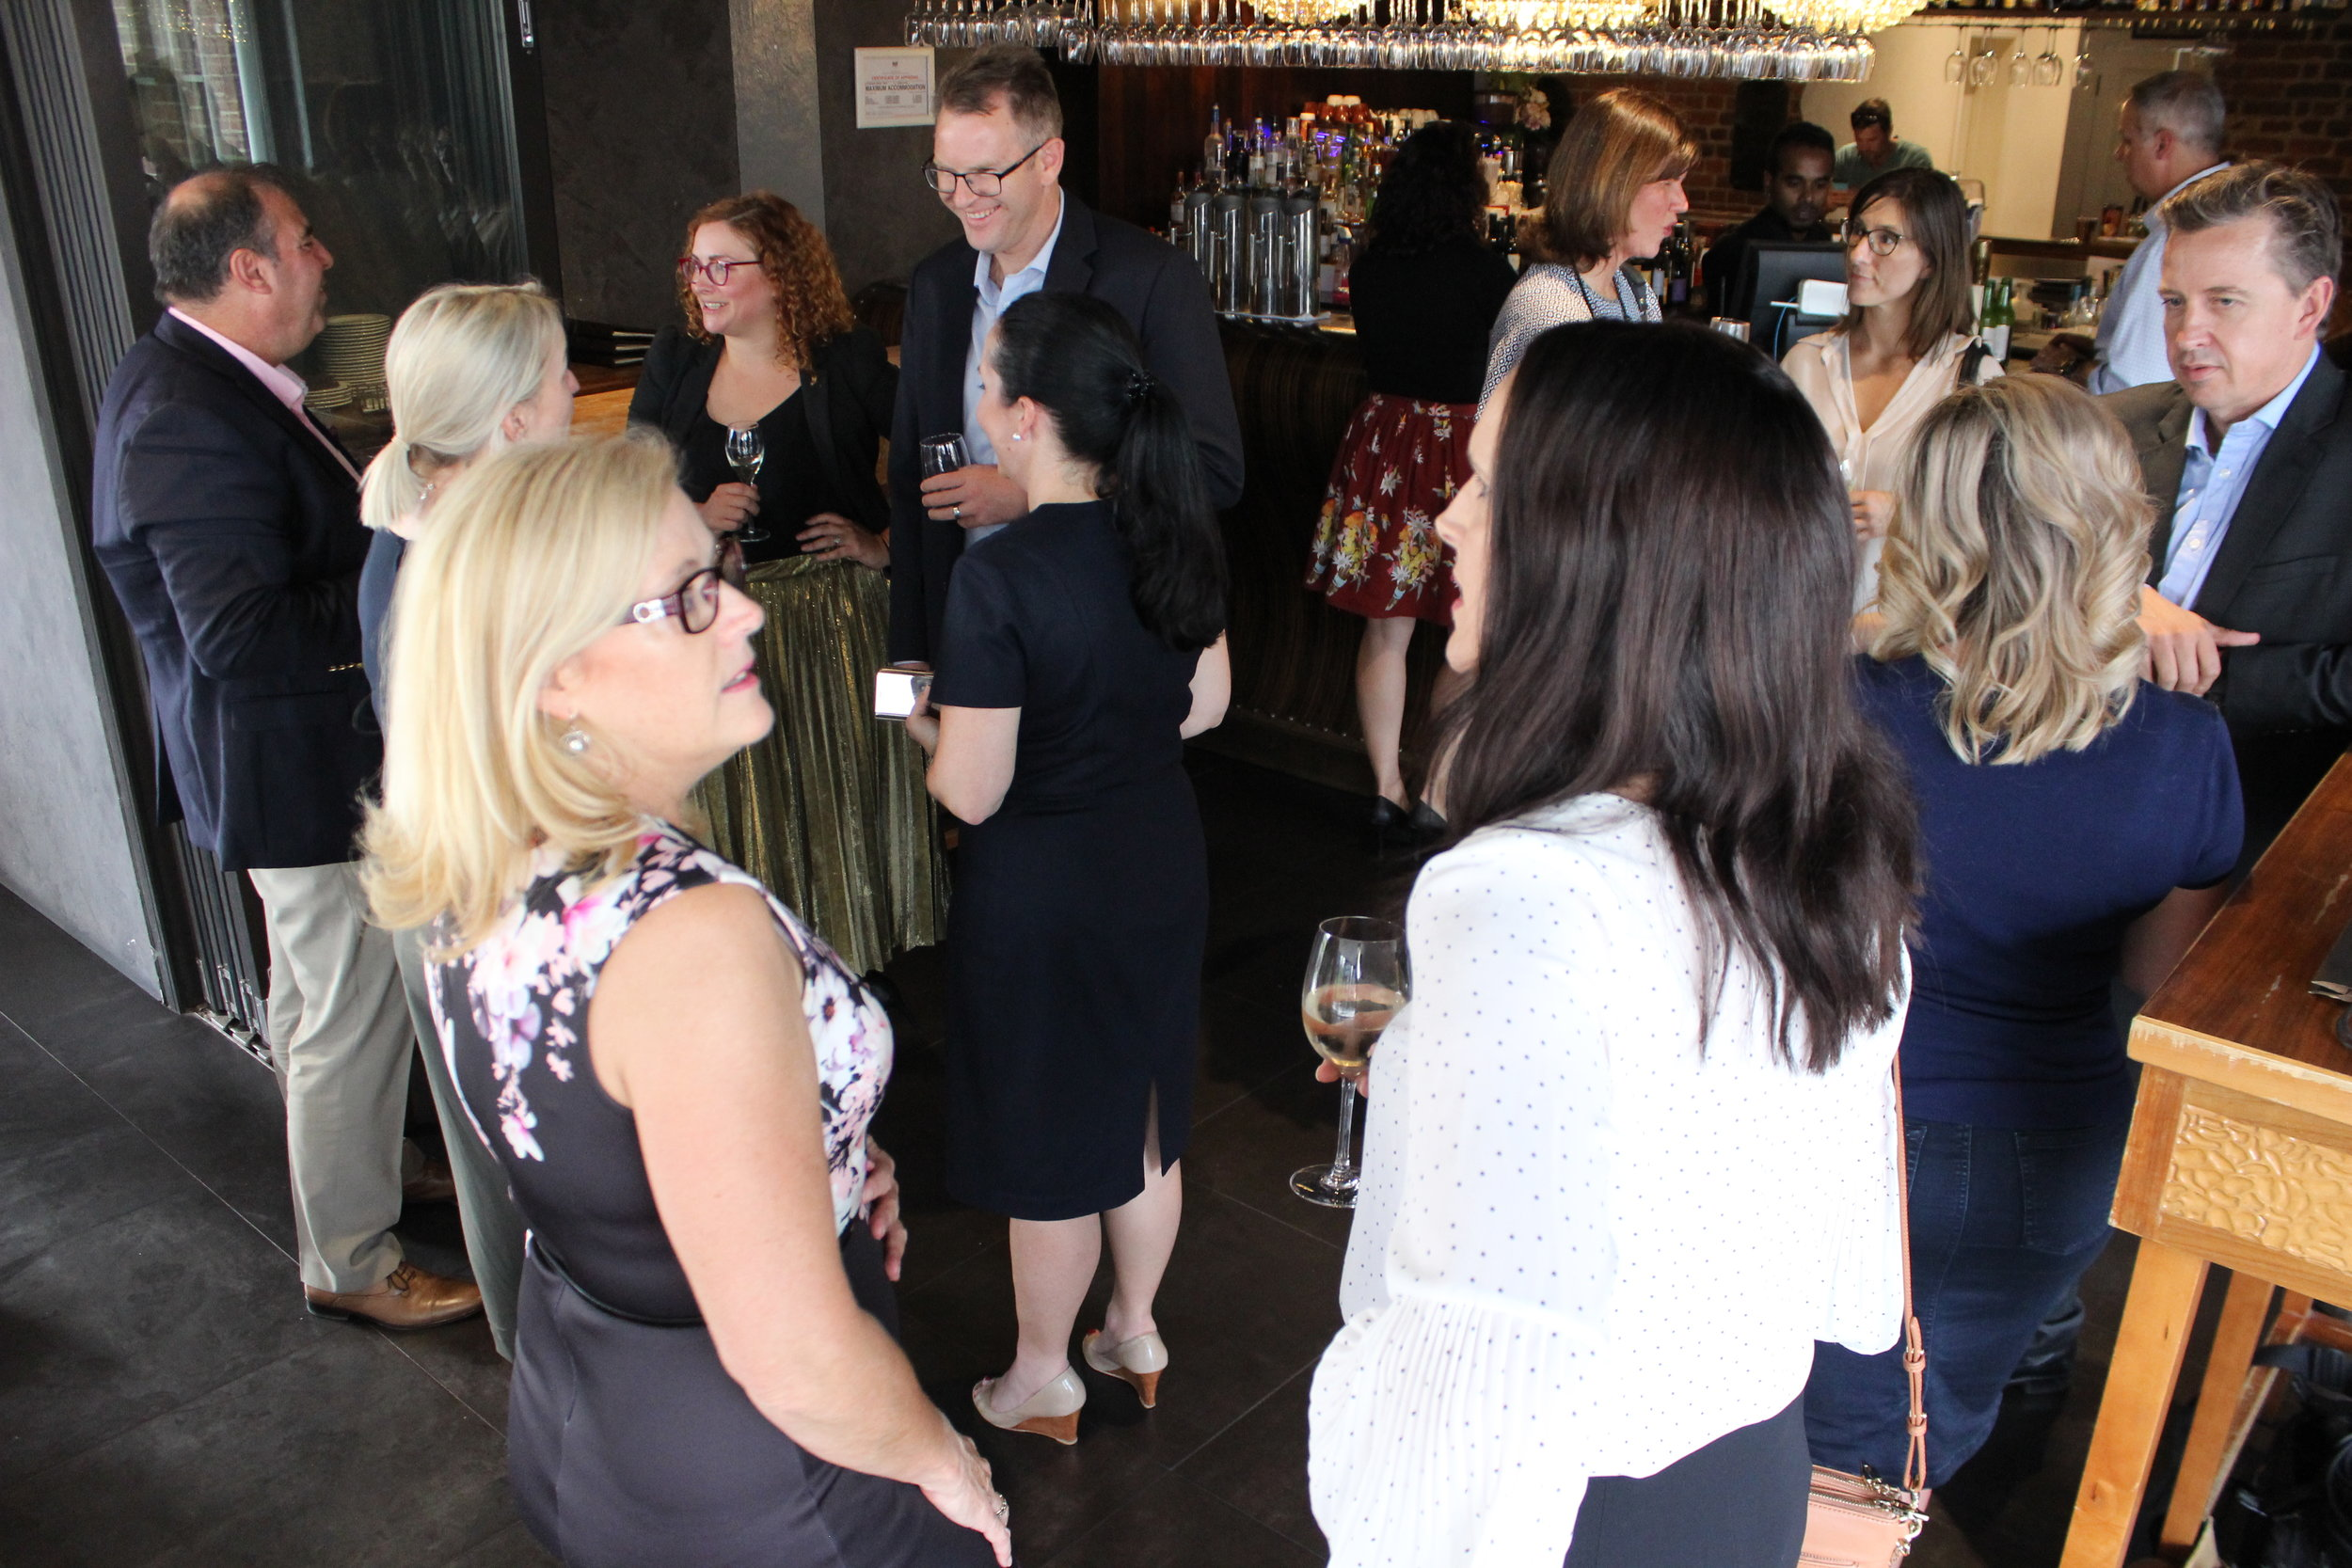 Midweek Mingle - Join IABC Western Australia and event sponsor MyMedia for our inaugural Midweek Mingle this July 31.EVENT DETAILS:Wednesday, 31 July5:30 – 7:30pmThe George Hotel216 St Georges Terrace, PerthIABC members @ $20 I Non IABC members @ $35